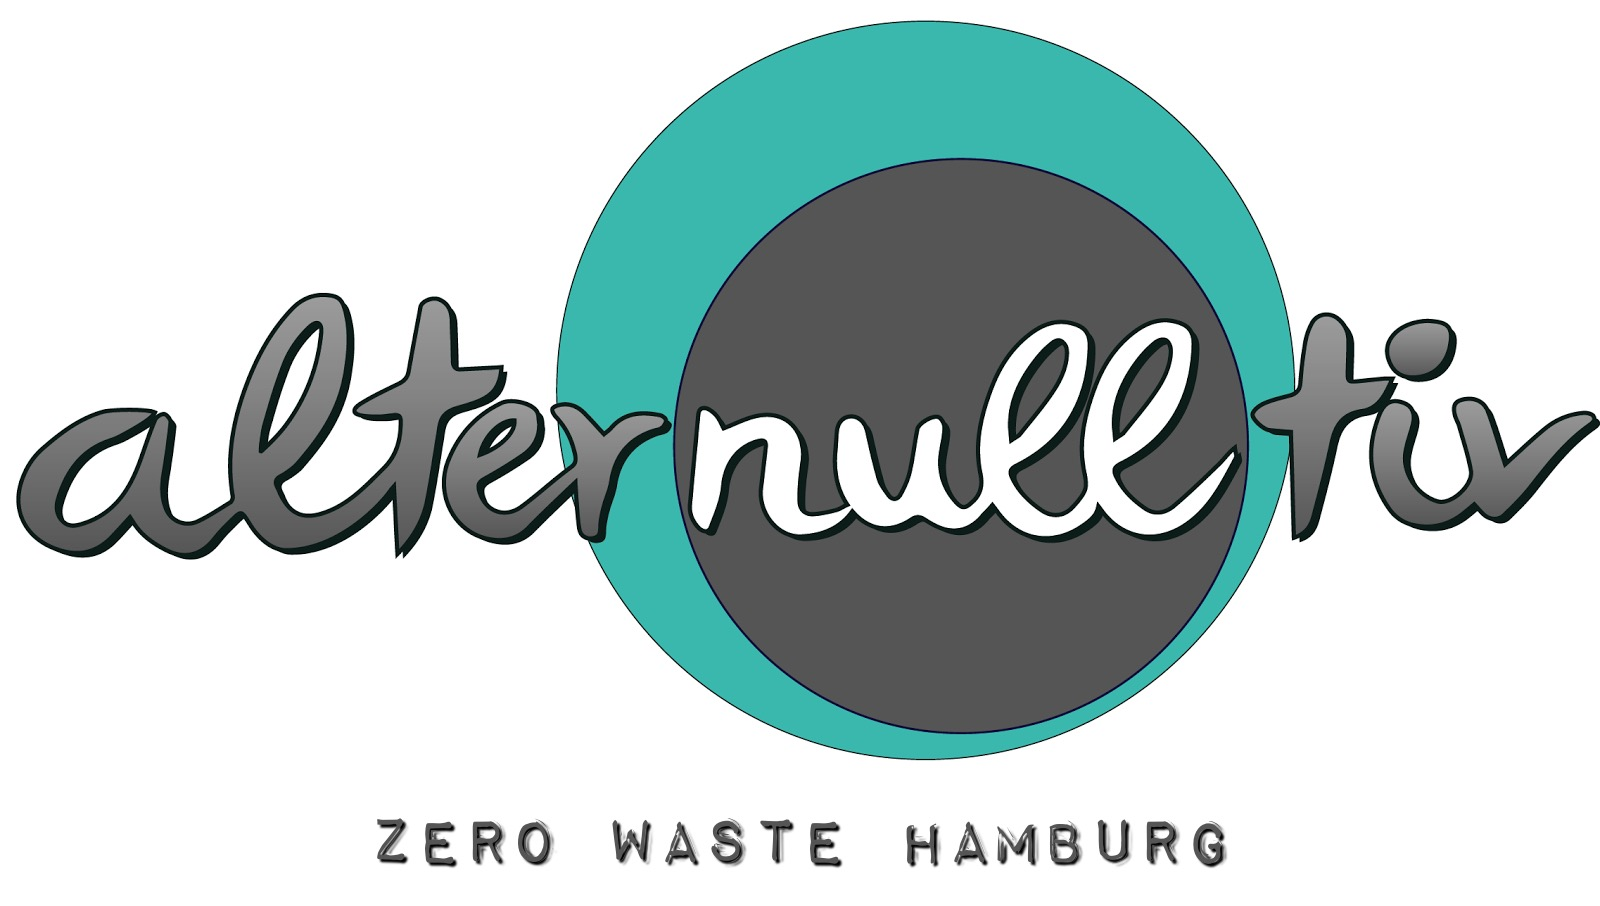 Zero Waste Hamburg